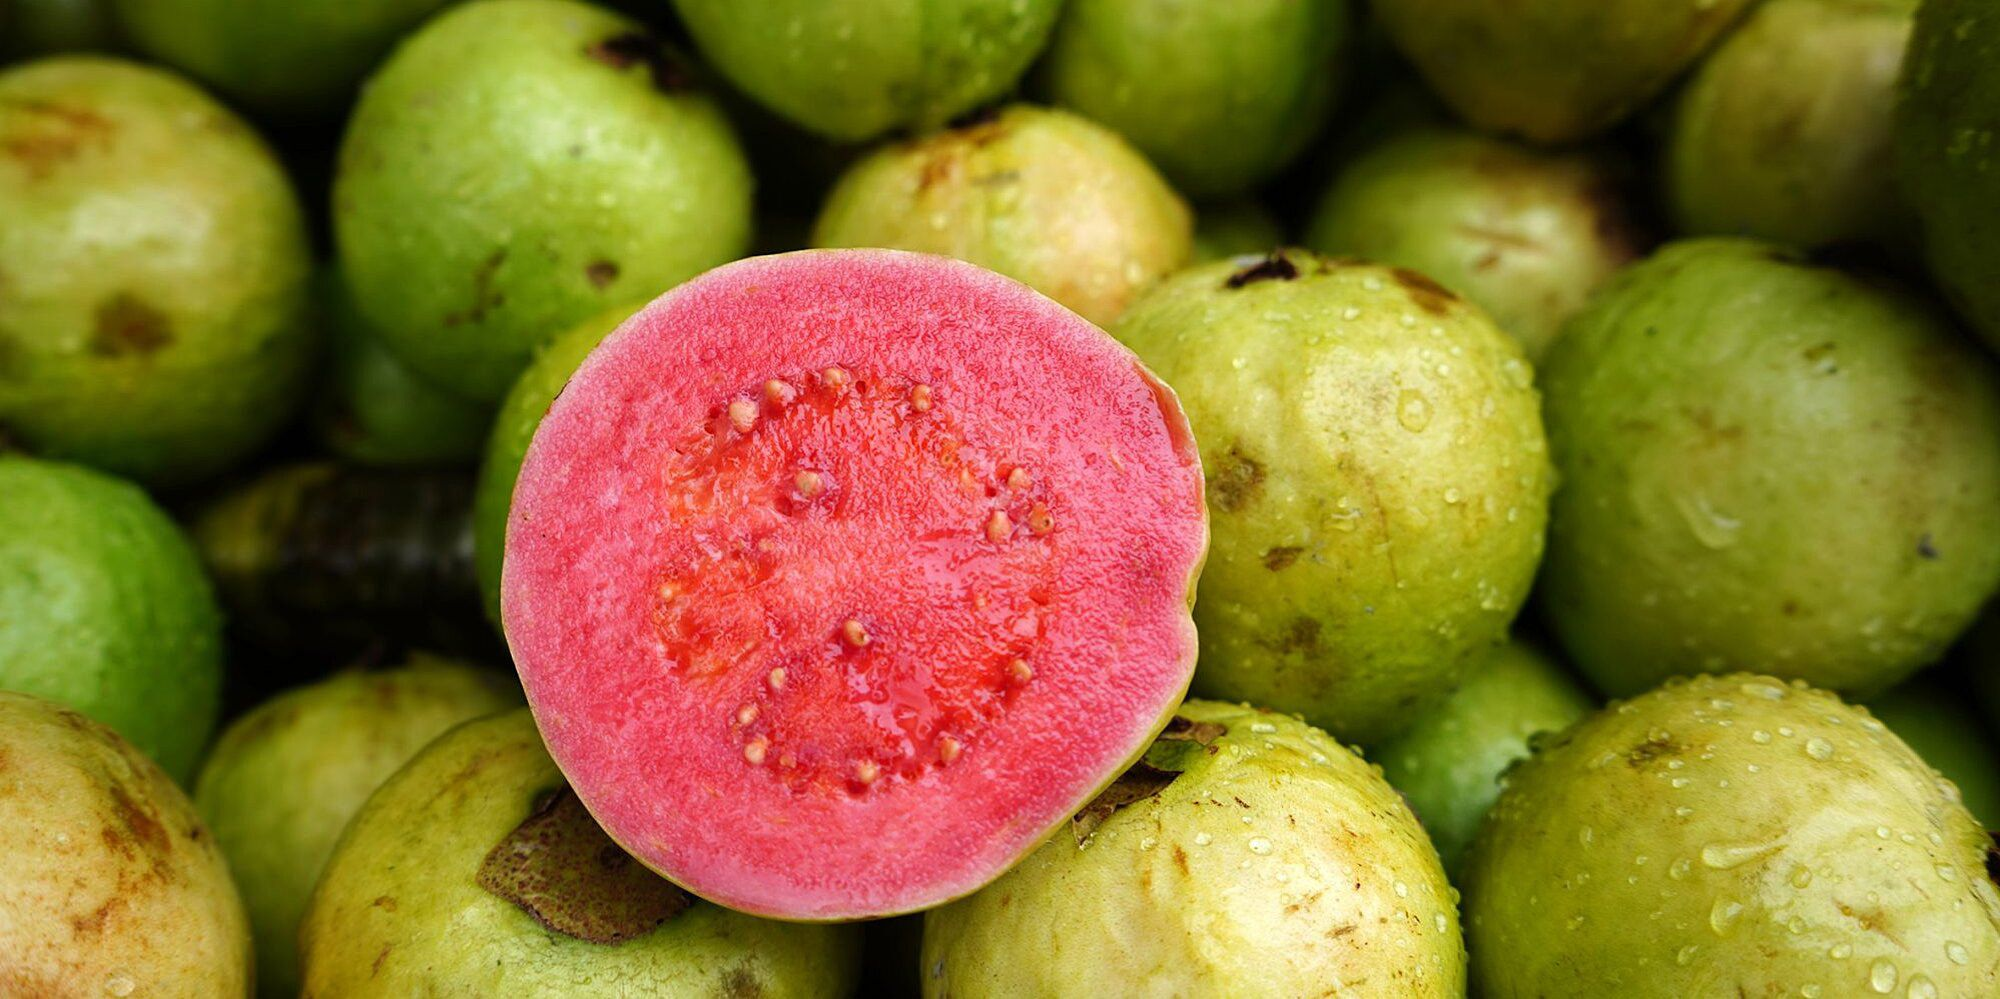 SUPERFRUIT: In Africa the guava is considered an excellent treatment for constipation